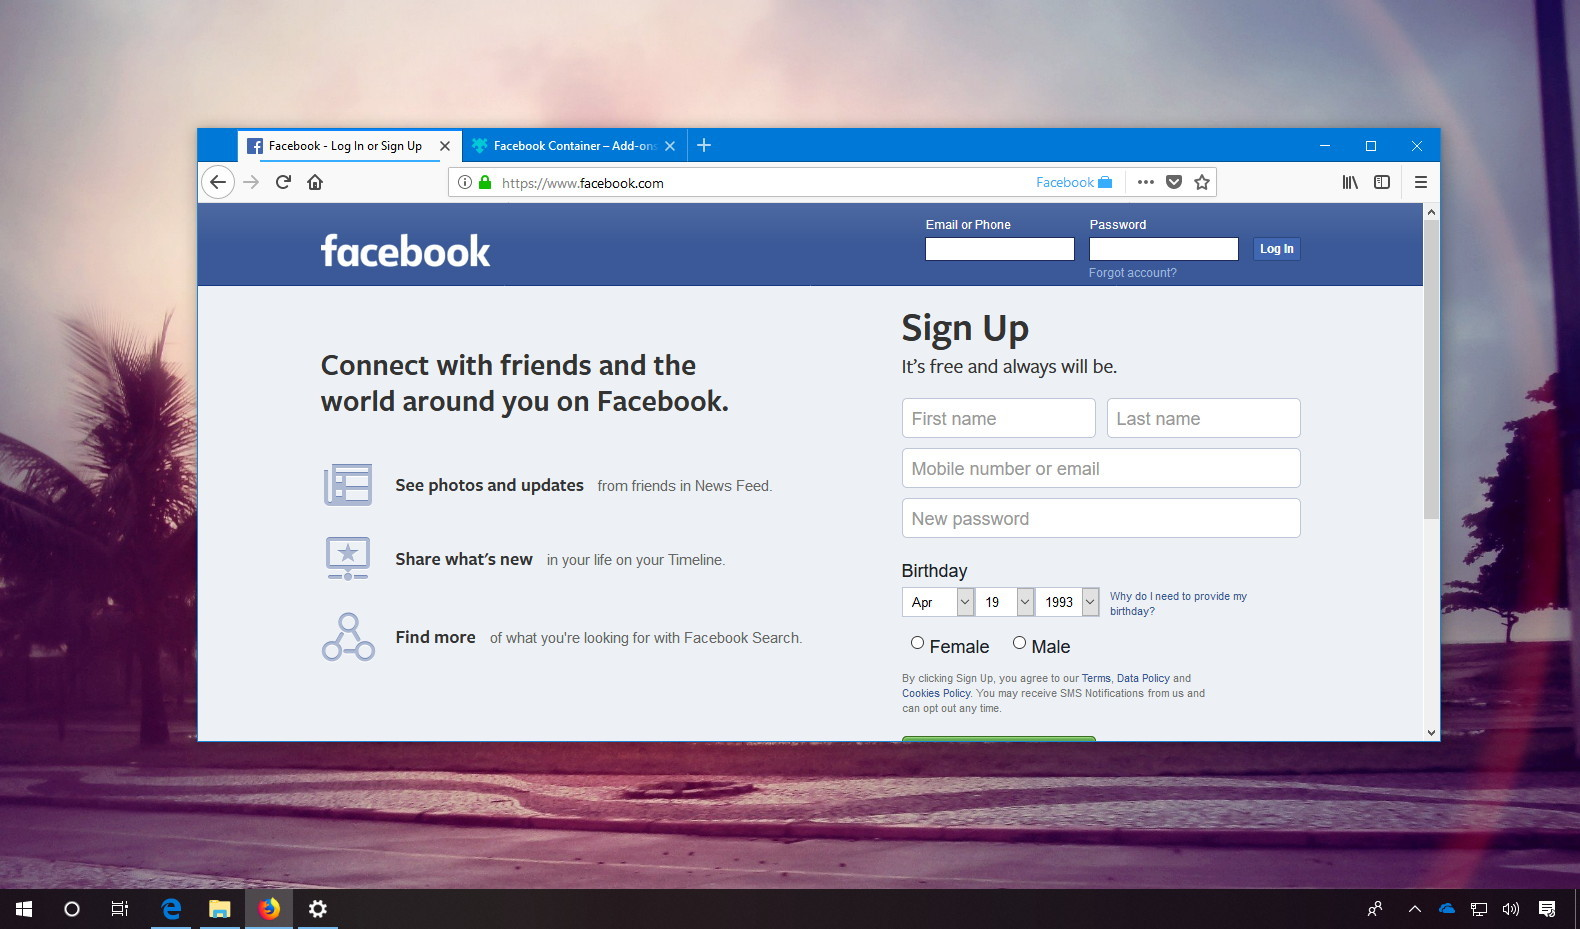 Firefox's Facebook Container extension blocks online tracking